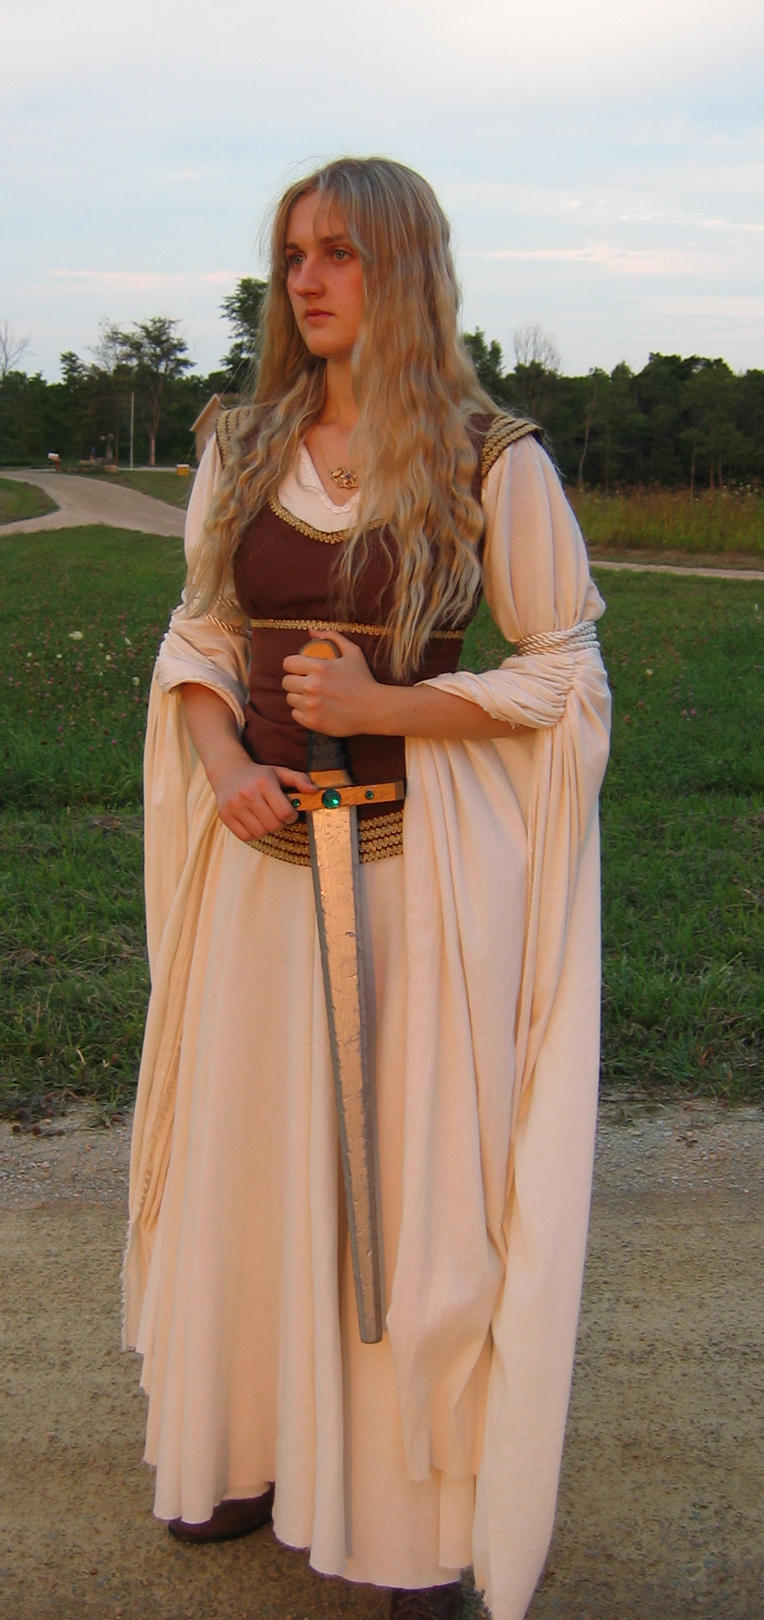 Eowyn Shieldmaiden 2 by ThreeRingCinema